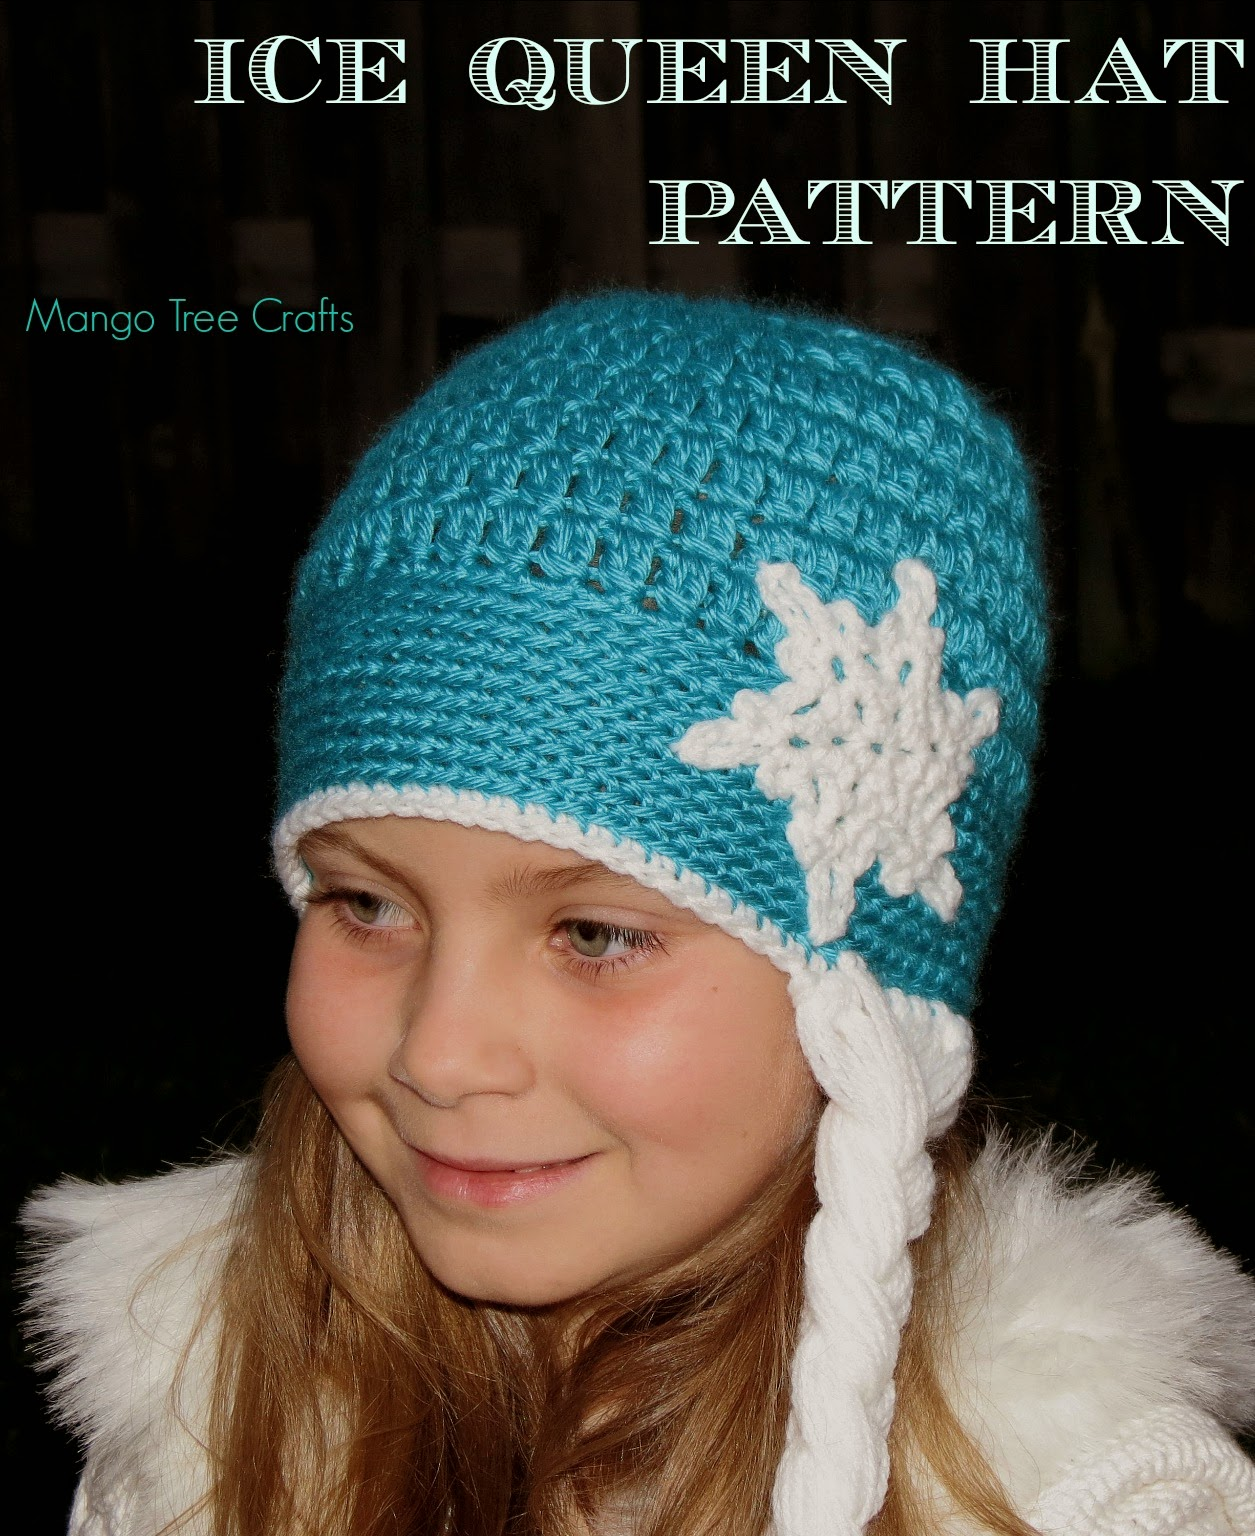 Crochet Hat Pattern For Elsa : Mango Tree Crafts: Ice Queen Crochet Hat Pattern